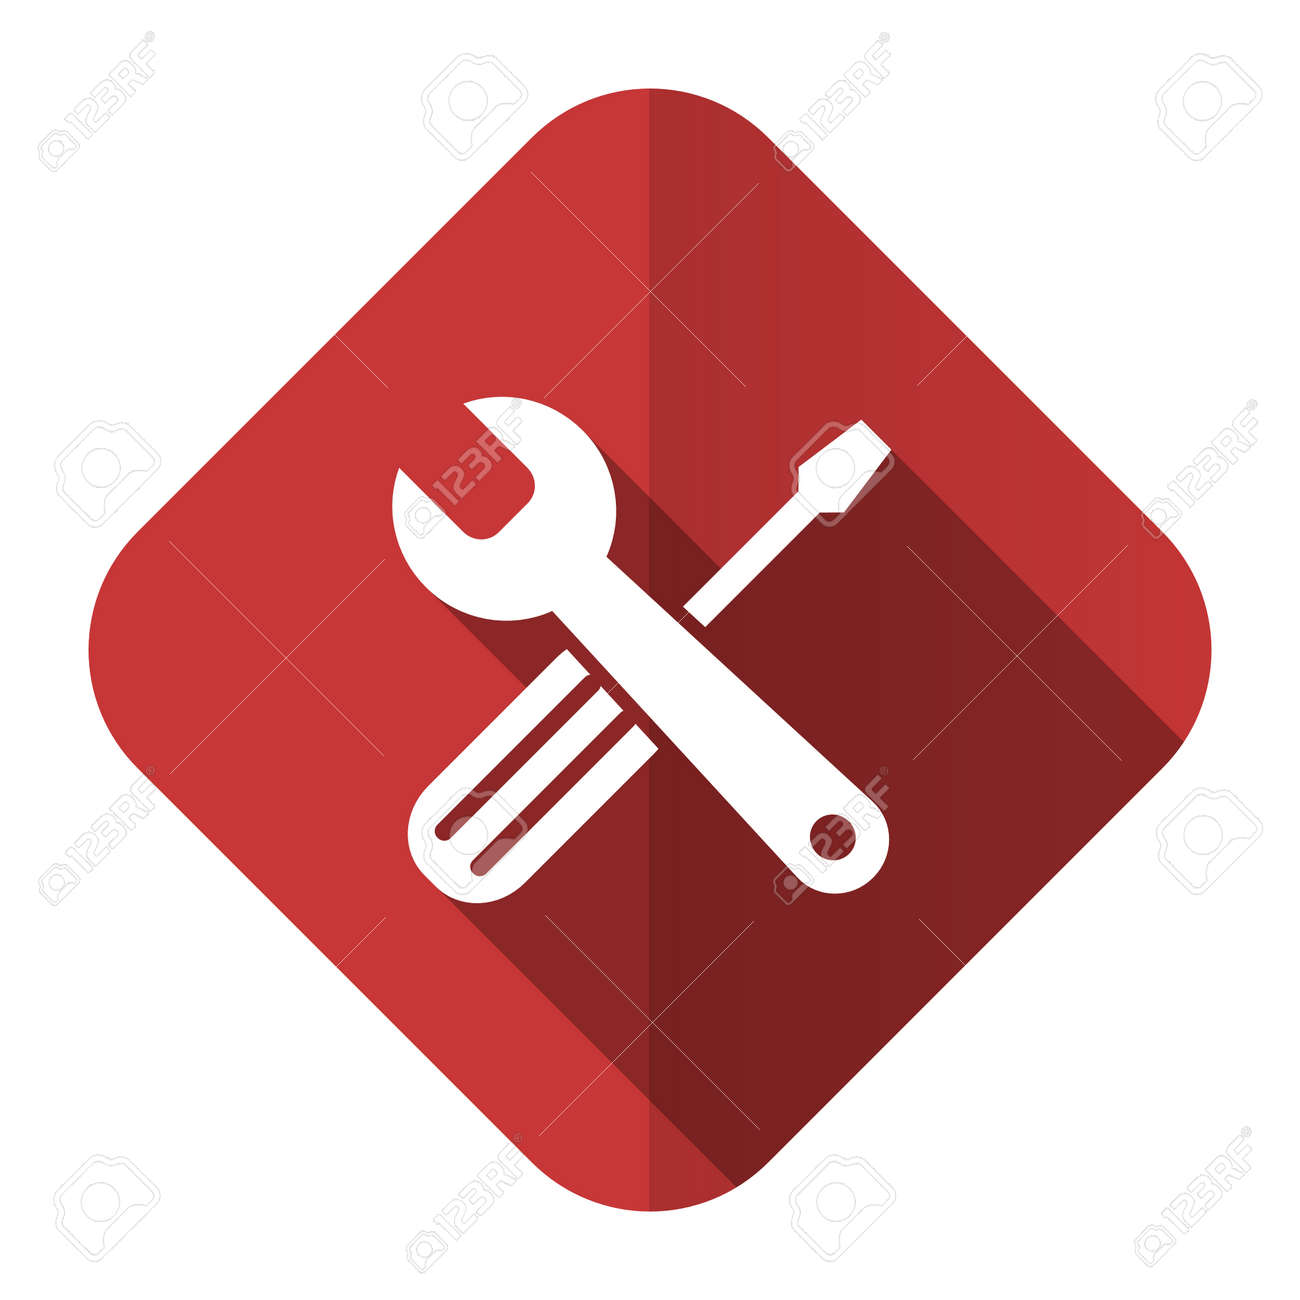 Tools Flat Icon Service Sign Stock Photo, Picture And Royalty Free ...